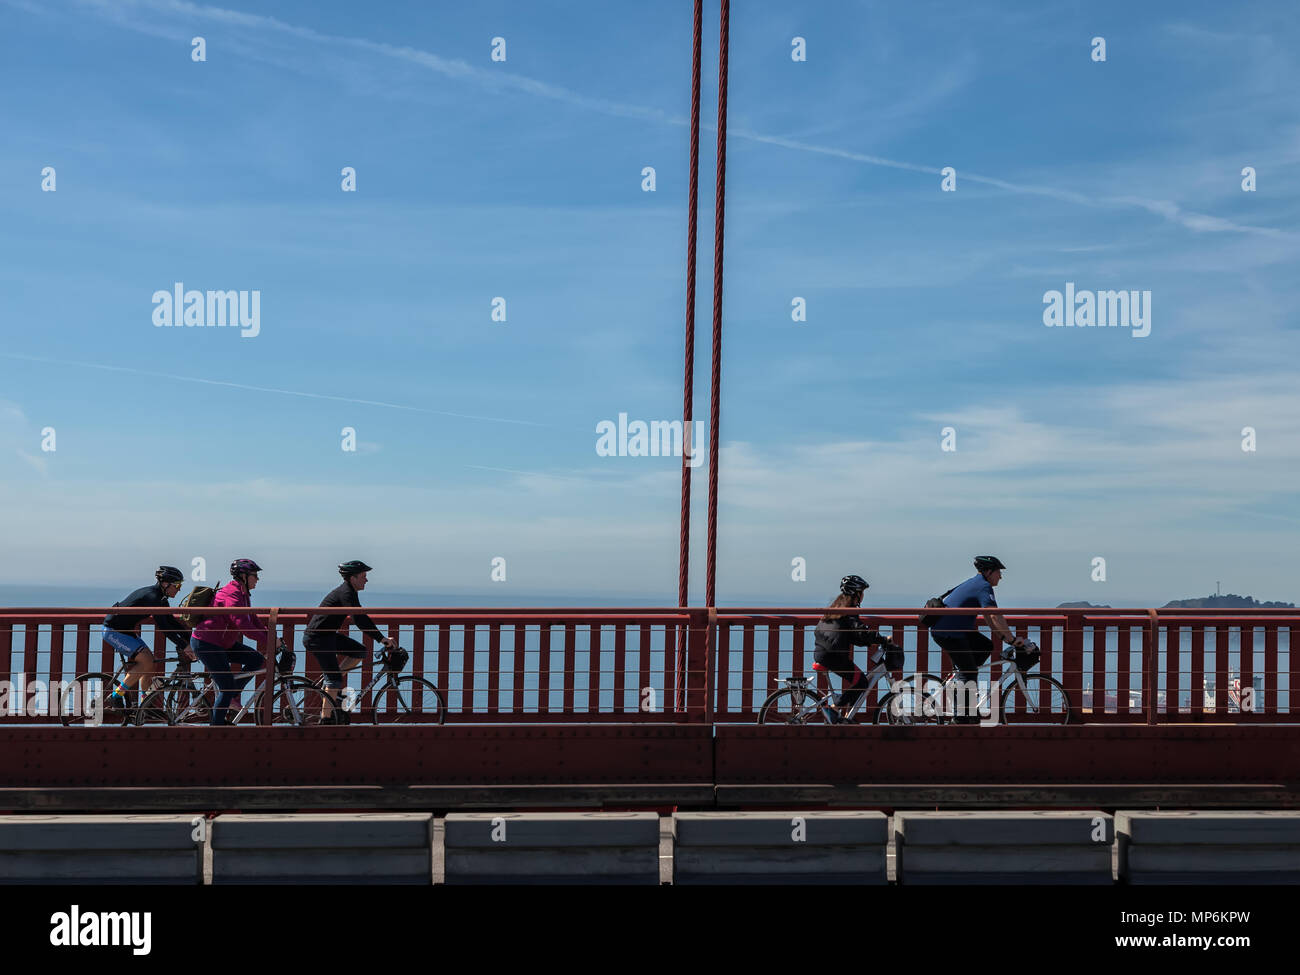 Bicyclists on the Golden Gate Bridge, San Francisco, California, United States. - Stock Image